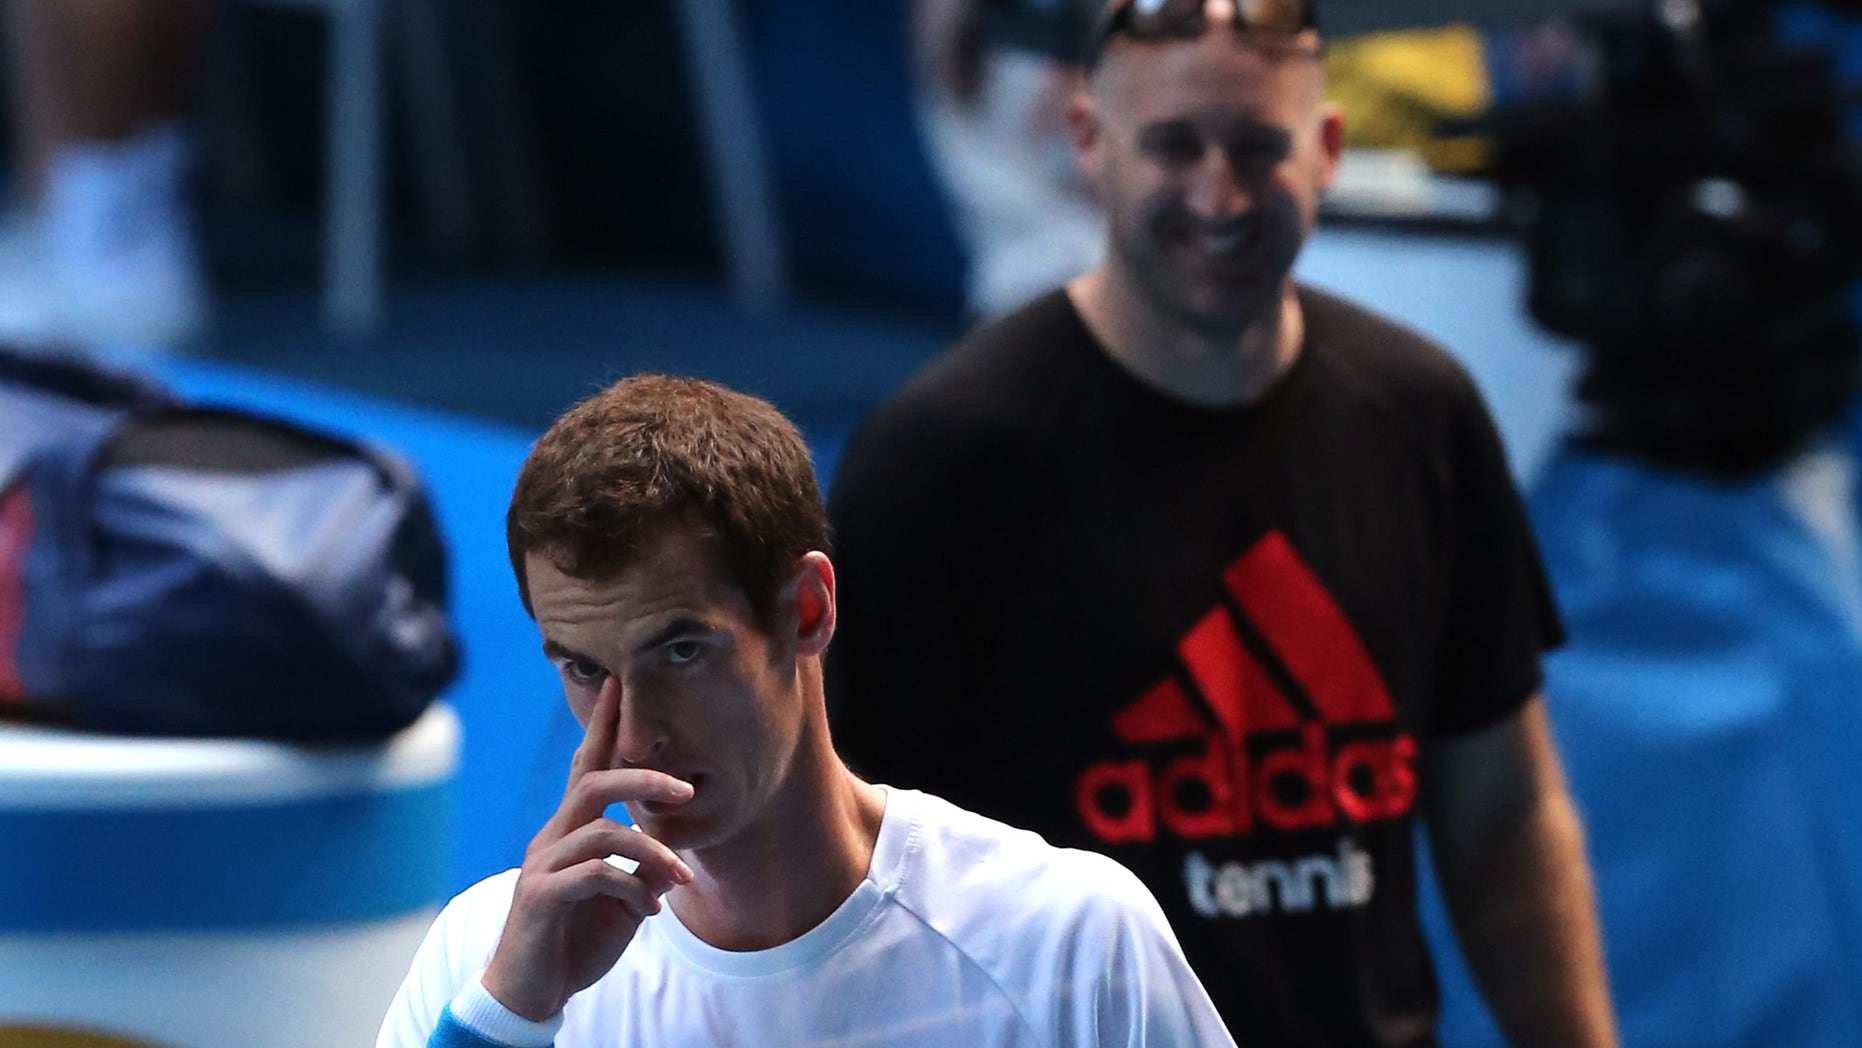 Andy Murray of Britain prepares for a training session on the Rod Laver Arena, at the Australian Open tennis championship in Melbourne, Australia, Tuesday, Jan. 21, 2014.  Wimbledon champion Murray faces Roger Federer, winner of 17 Grand Slams, at the Australian Open quarterfinal Wednesday.(AP Photo/Shuji Kajiyama)